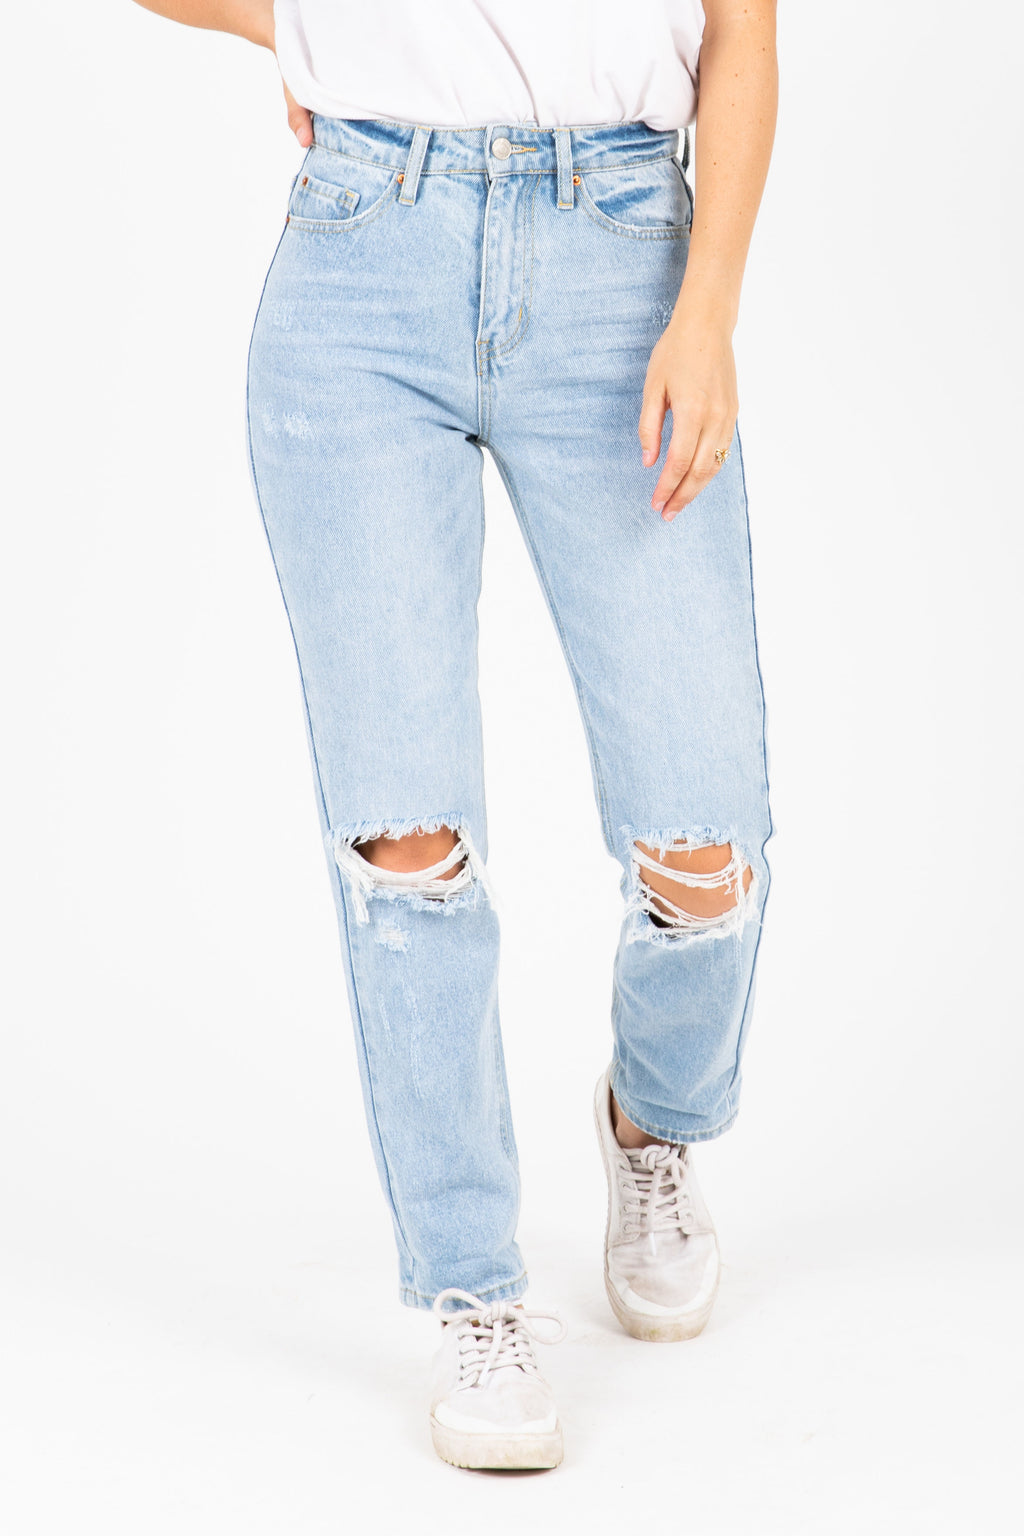 The Marcell Destructed Boyfriend Jeans in Light Denim, studio shoot; front view